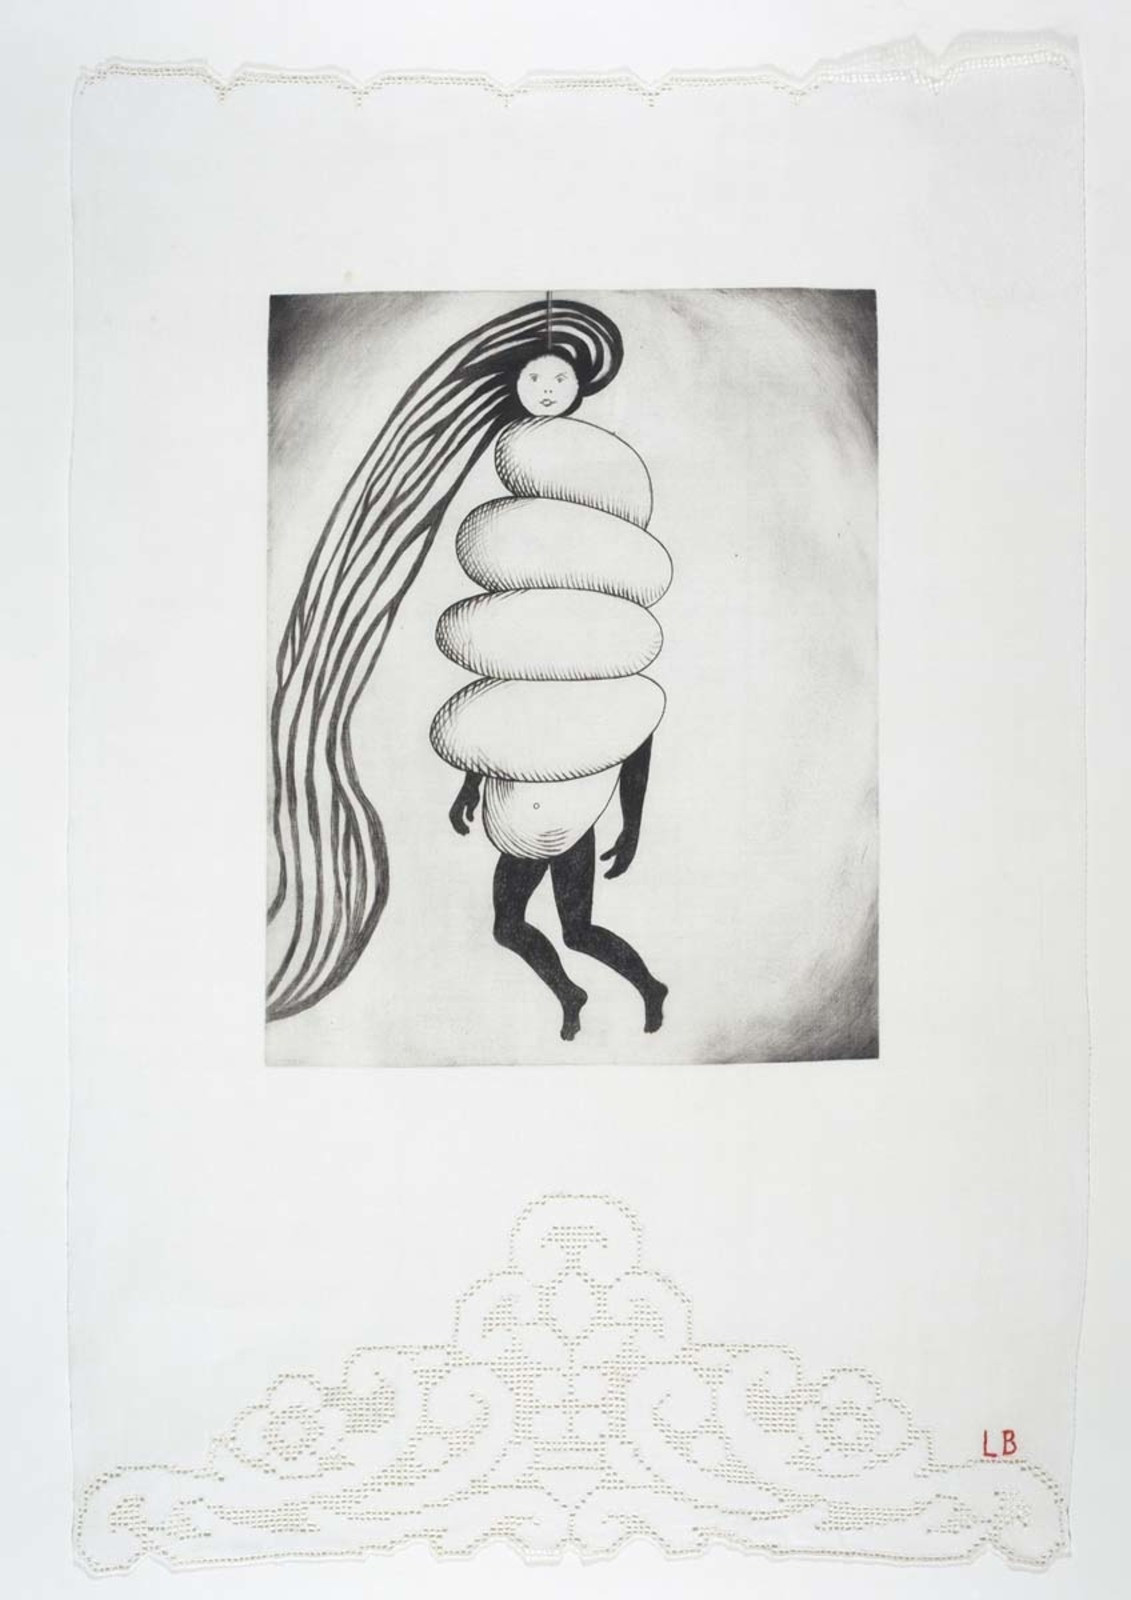 _Spiral Woman,_ 2002. Drypoint and engraving, with selective wiping, on fabric. Collection Harlan & Weaver, Inc., New York. © 2017 The Easton Foundation/Licensed by VAGA, NY. LN2017.758